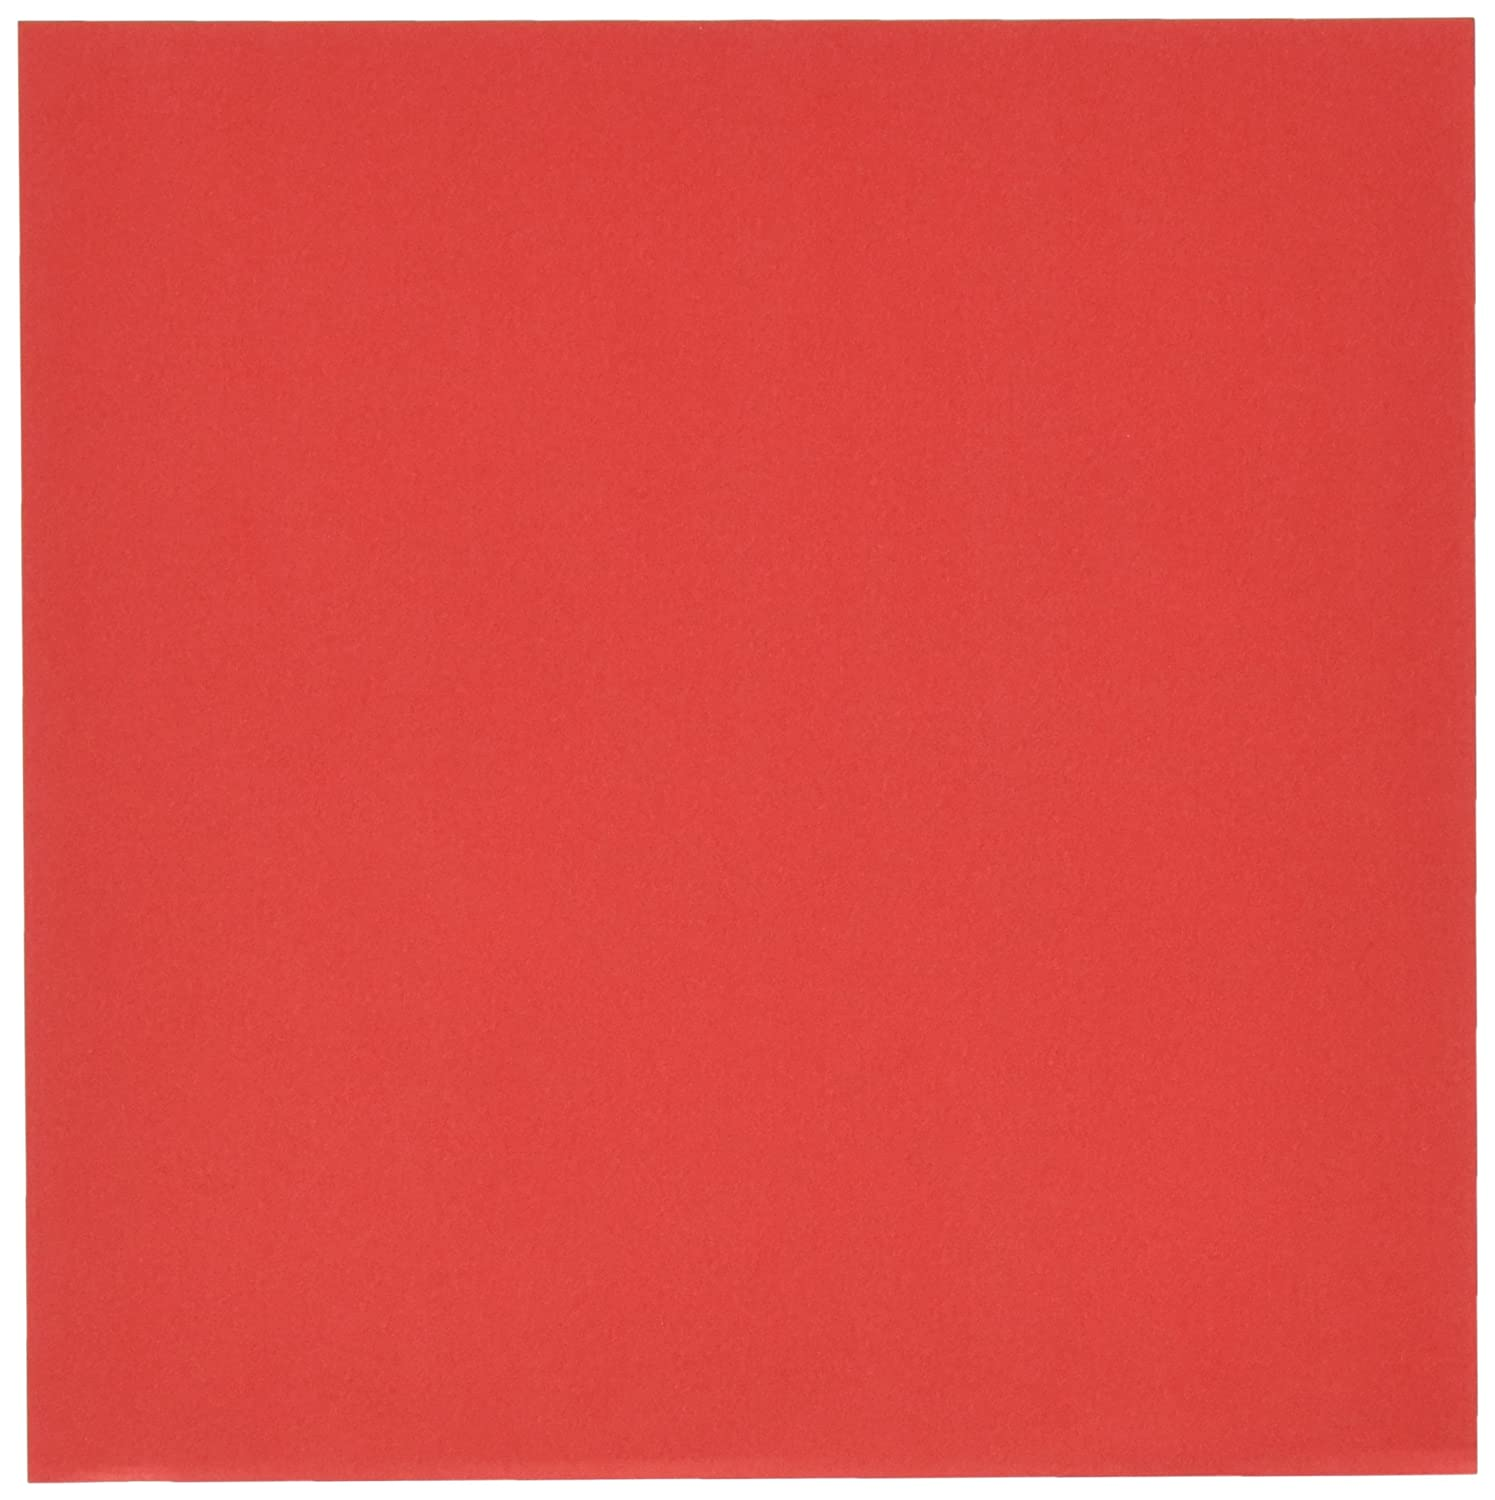 Aitoh OG-RD Origami Paper, 5.875-Inch by 5.875-Inch, Red, 50-Pack Notions